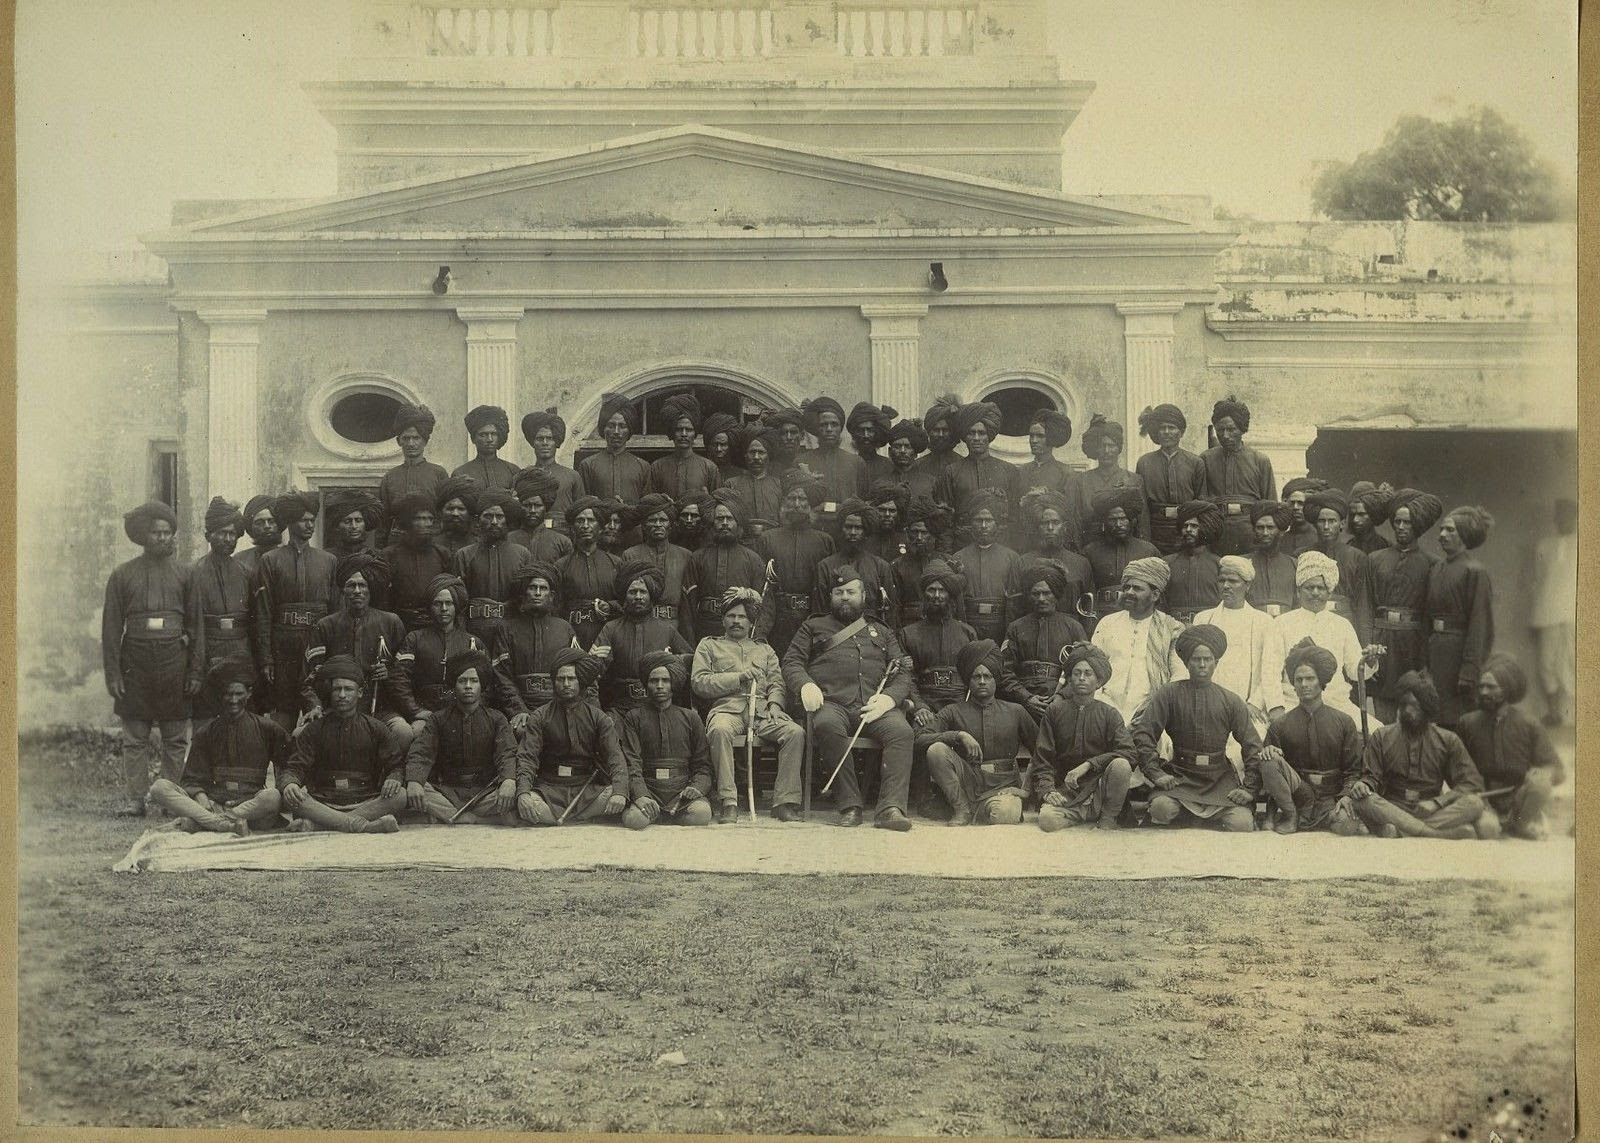 Group photo of Indian Men (Soldiers or Bodyguards) - c1900s